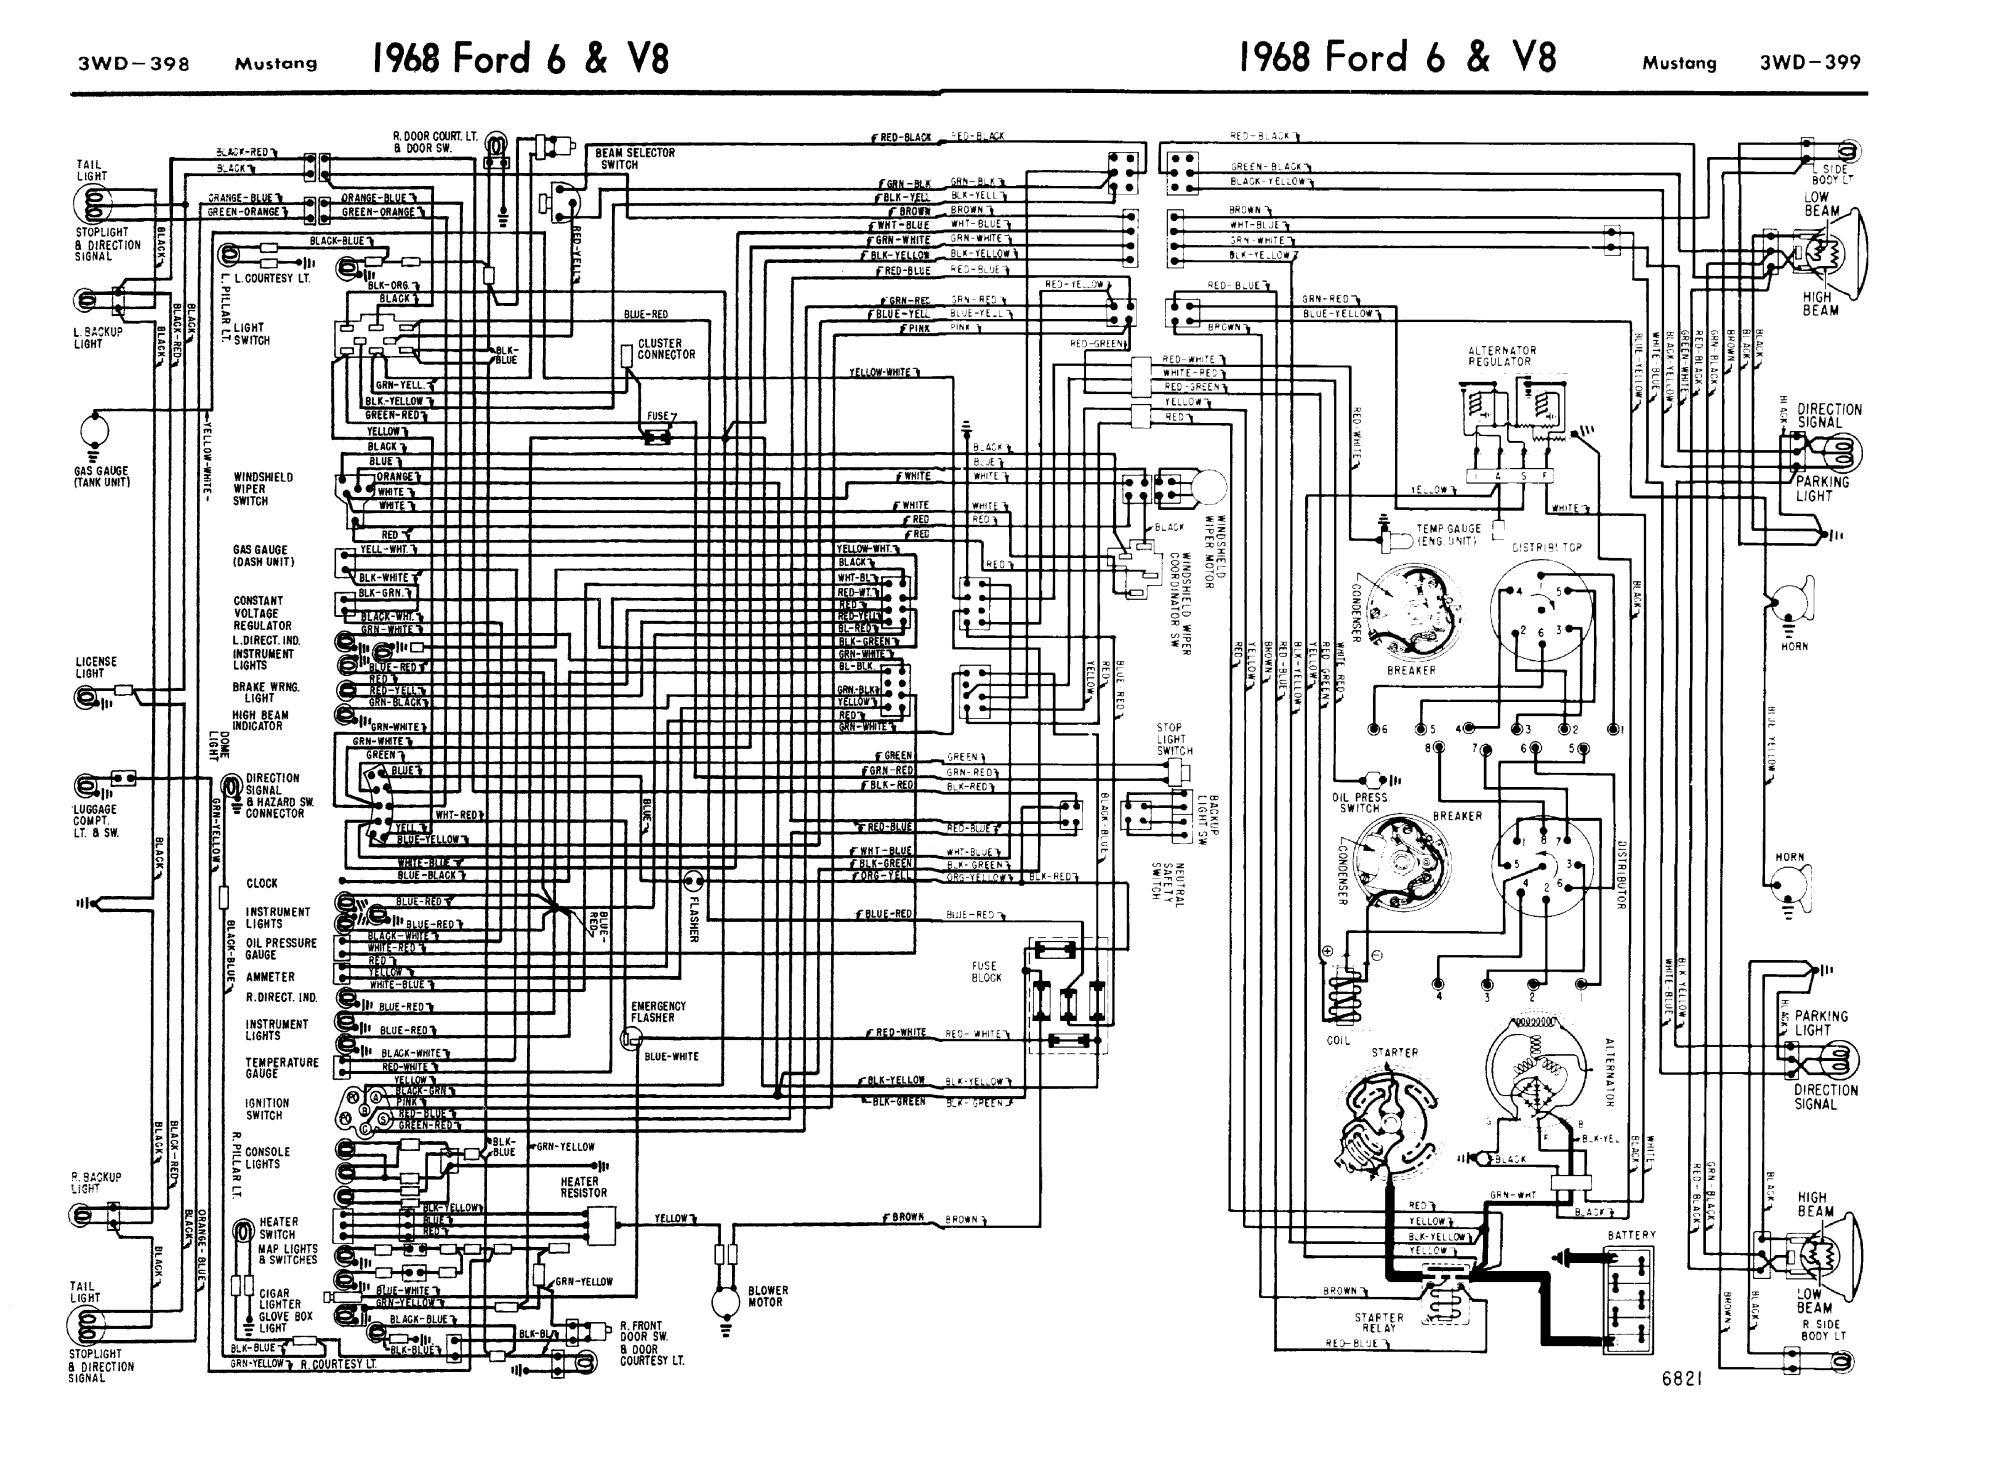 hight resolution of wiring diagram ford mustang wiring diagram query 2010 mustang o2 sensor wiring diagram 2010 mustang wiring diagram